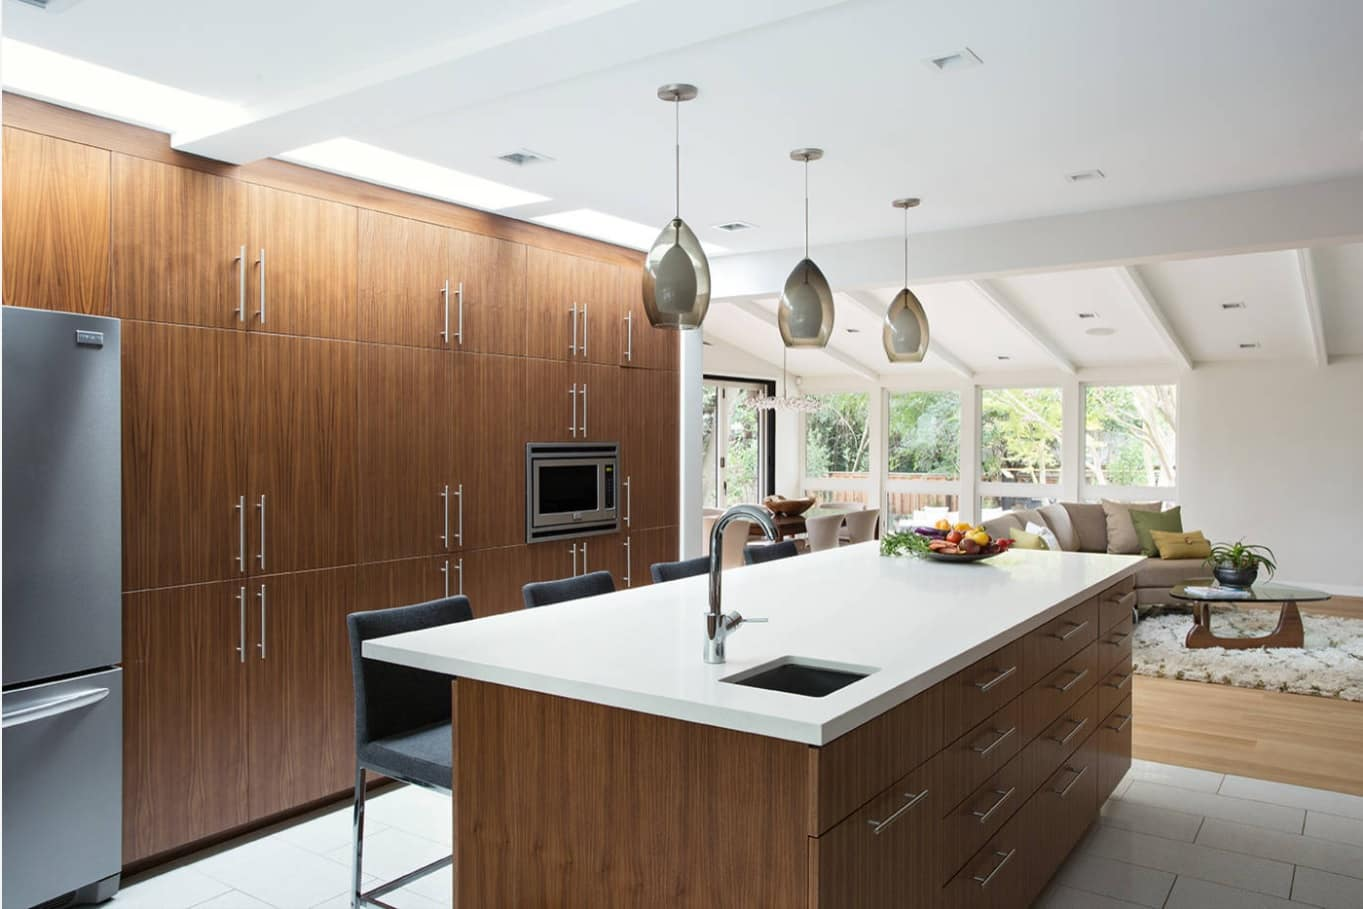 Wooden designed kitchen facades for white colored casual interior full of natural light